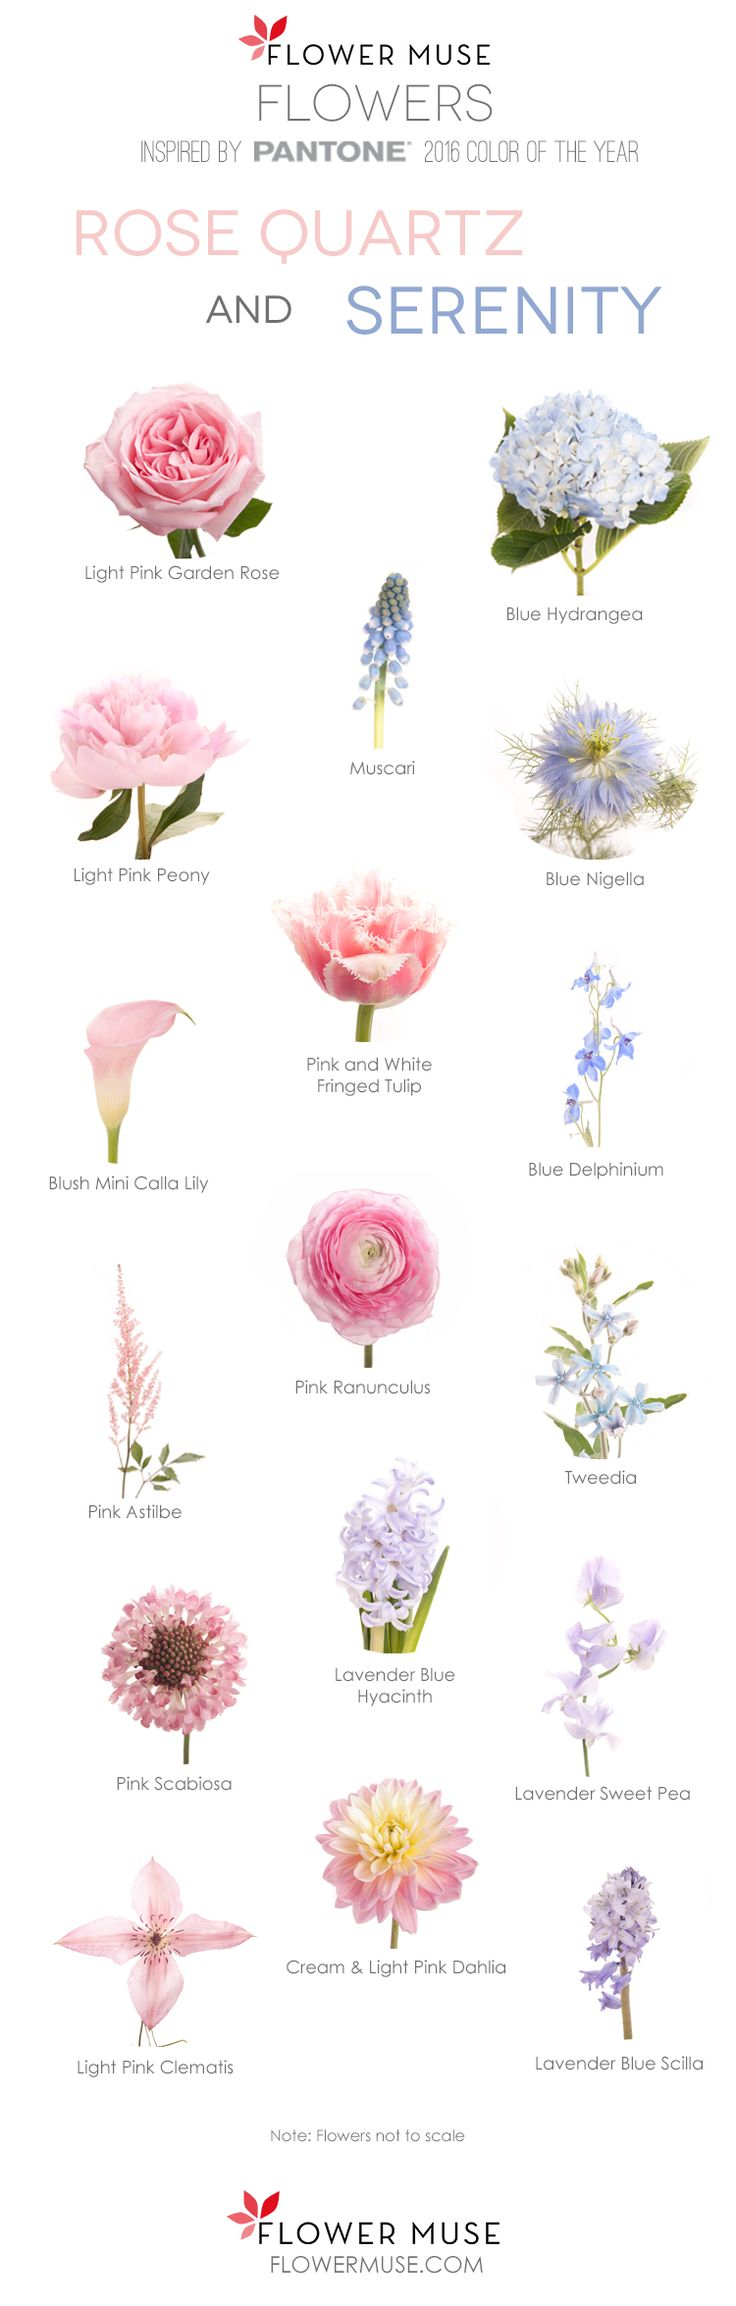 32 best flores images on pinterest flowers bouquets and floral 2016 pantone color of the year rose quartz and serenity flower inspiration see mightylinksfo